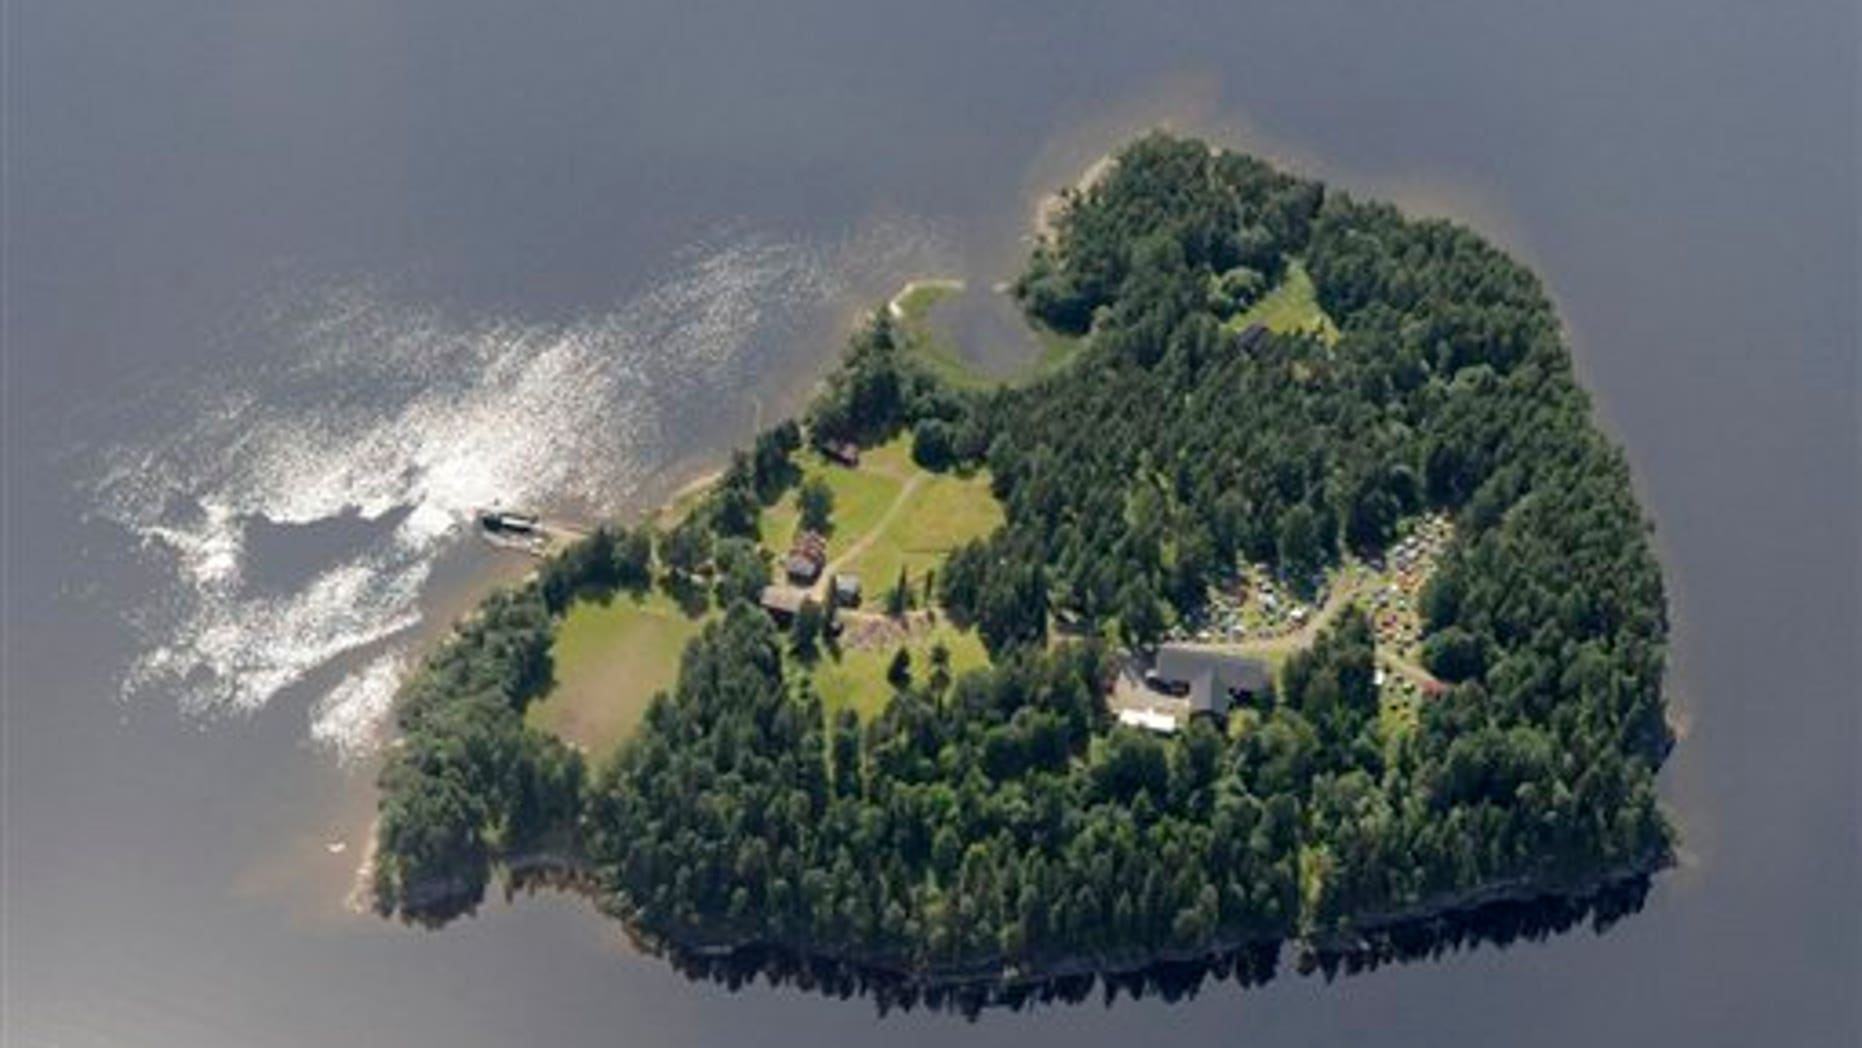 An aerial view of Utoya Island, Norway taken Thursday, July 21, 2011. Police say they are sending anti-terror police to a youth camp outside Oslo after reports of a shooting there following the bomb blast at the government headquarters. The news site VG reported that a man dressed in a police uniform opened fire at the camp. It says several people were injured. Oslo police chief Anstein Gjengdal said anti-terror units were being sent to the camp at Utoya, outside the Norwegian capital. He had no other information on that incident, which came hours after a bomb blast outside the government headquarters killed at least two people and injured 15. (AP Photo/Mapaid, Lasse Tur)  NORWAY OUT